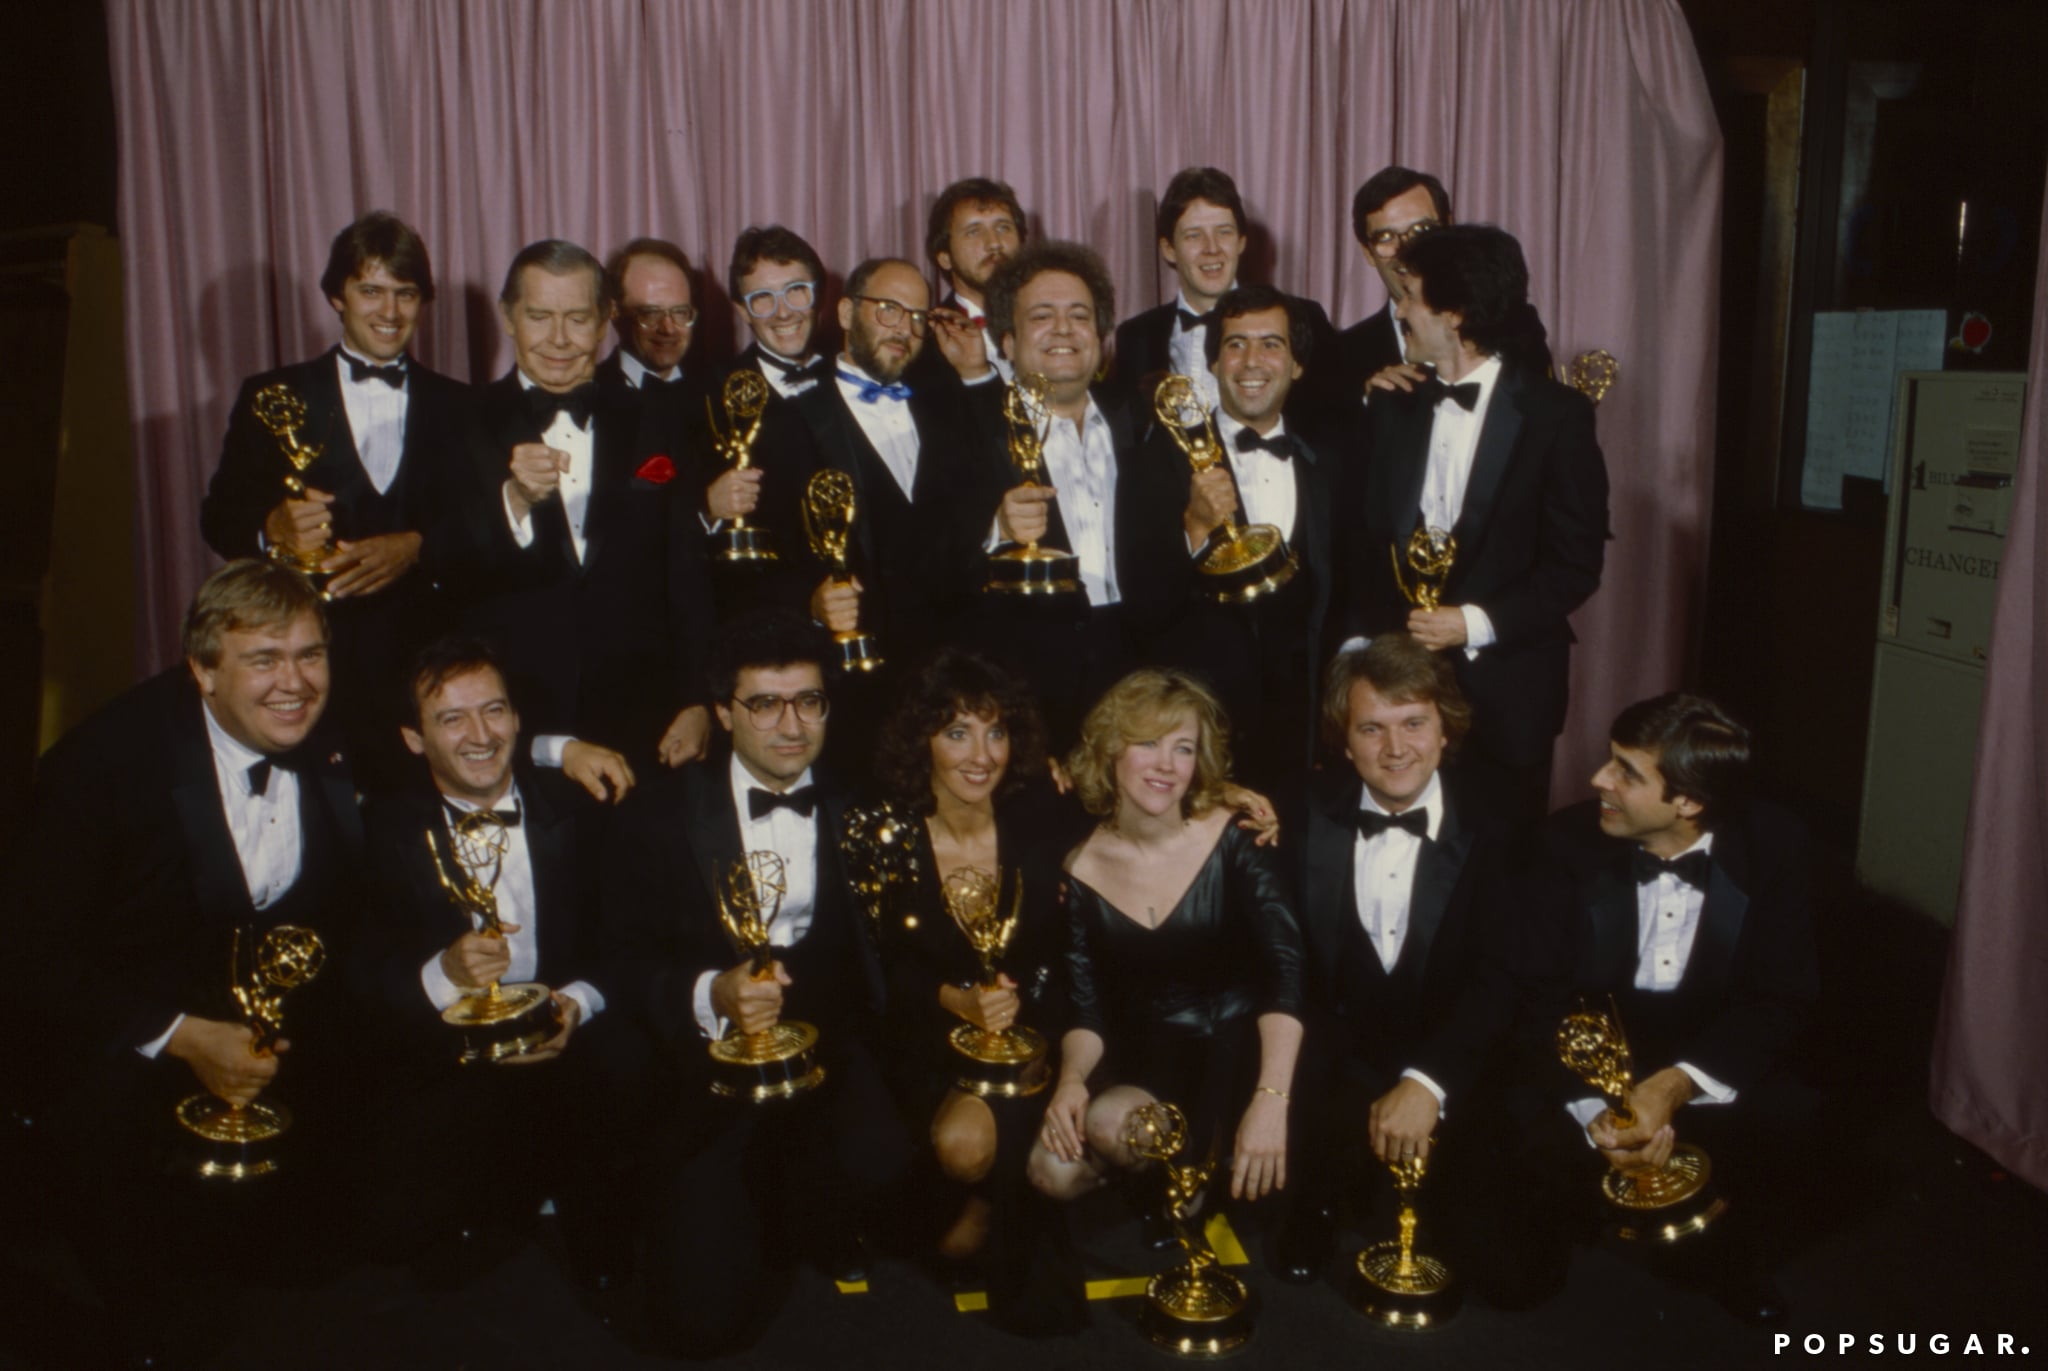 Pasadena, CA - 1982: (L-R) Milton Berle, John Candy, Joe Flaherty, Eugene Levy, Andrea Martin, Catherine O'Hara, Dave Thomas, SCTV crew and cast appearing at the 34th Primetime Emmy Awards, Pasadena Civic Auditorium, Pasadena, CA, September 19, 1982. (Photo by George Long /Walt Disney Television via Getty Images)